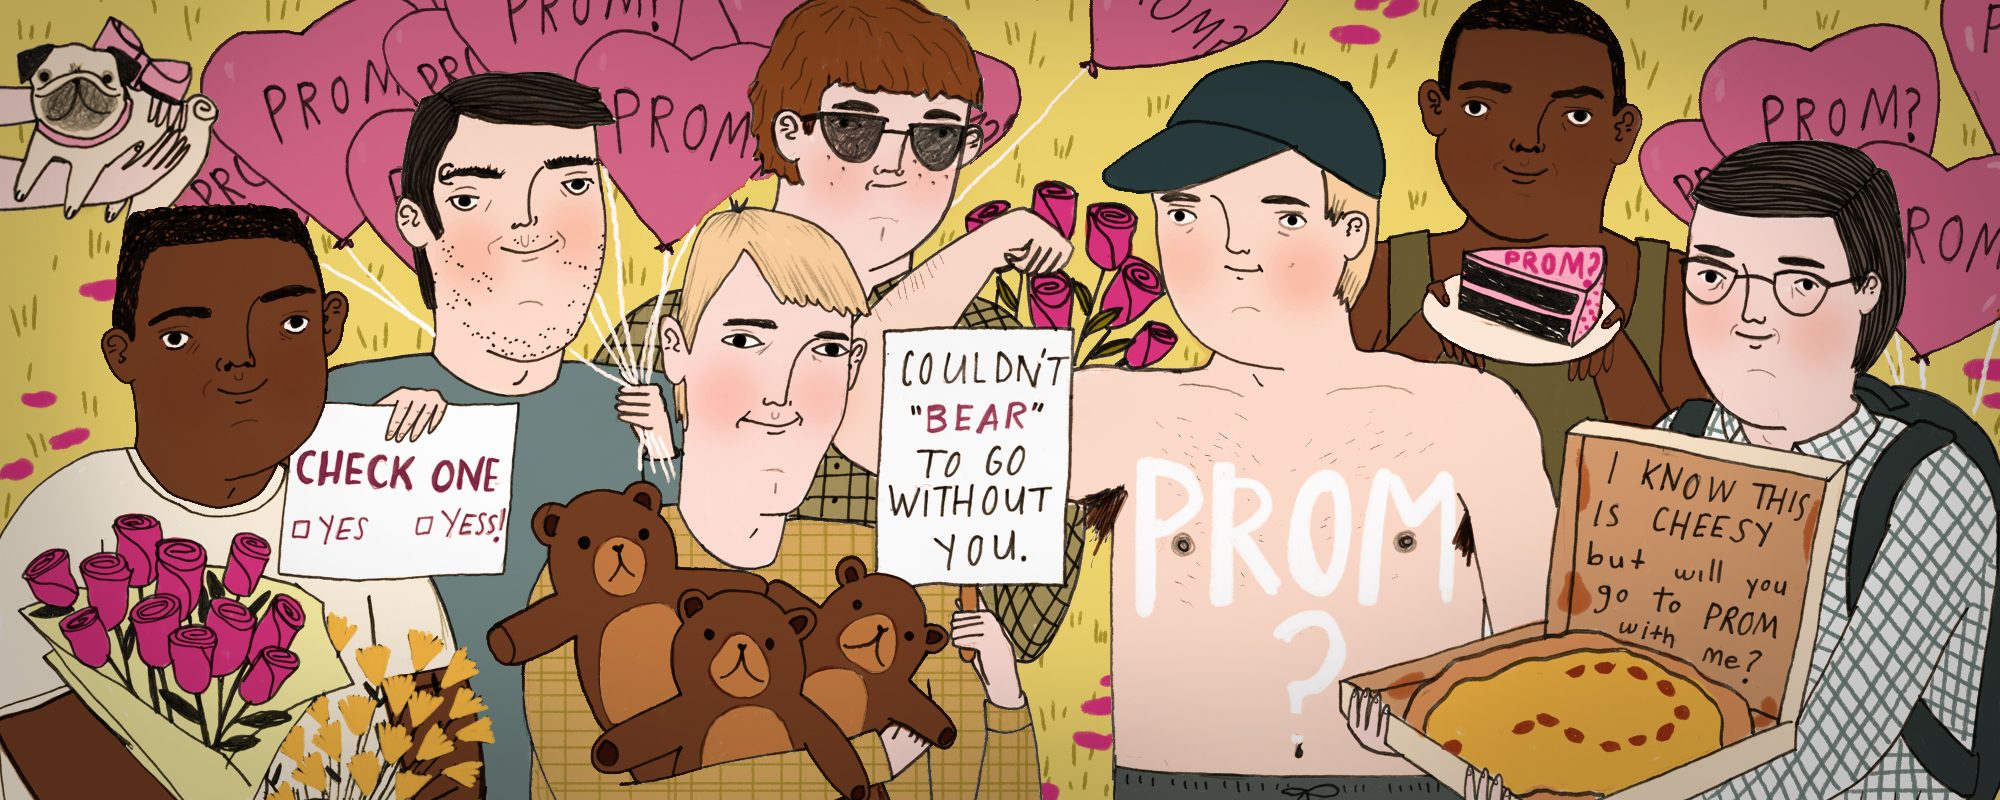 Vice: Prom Posals